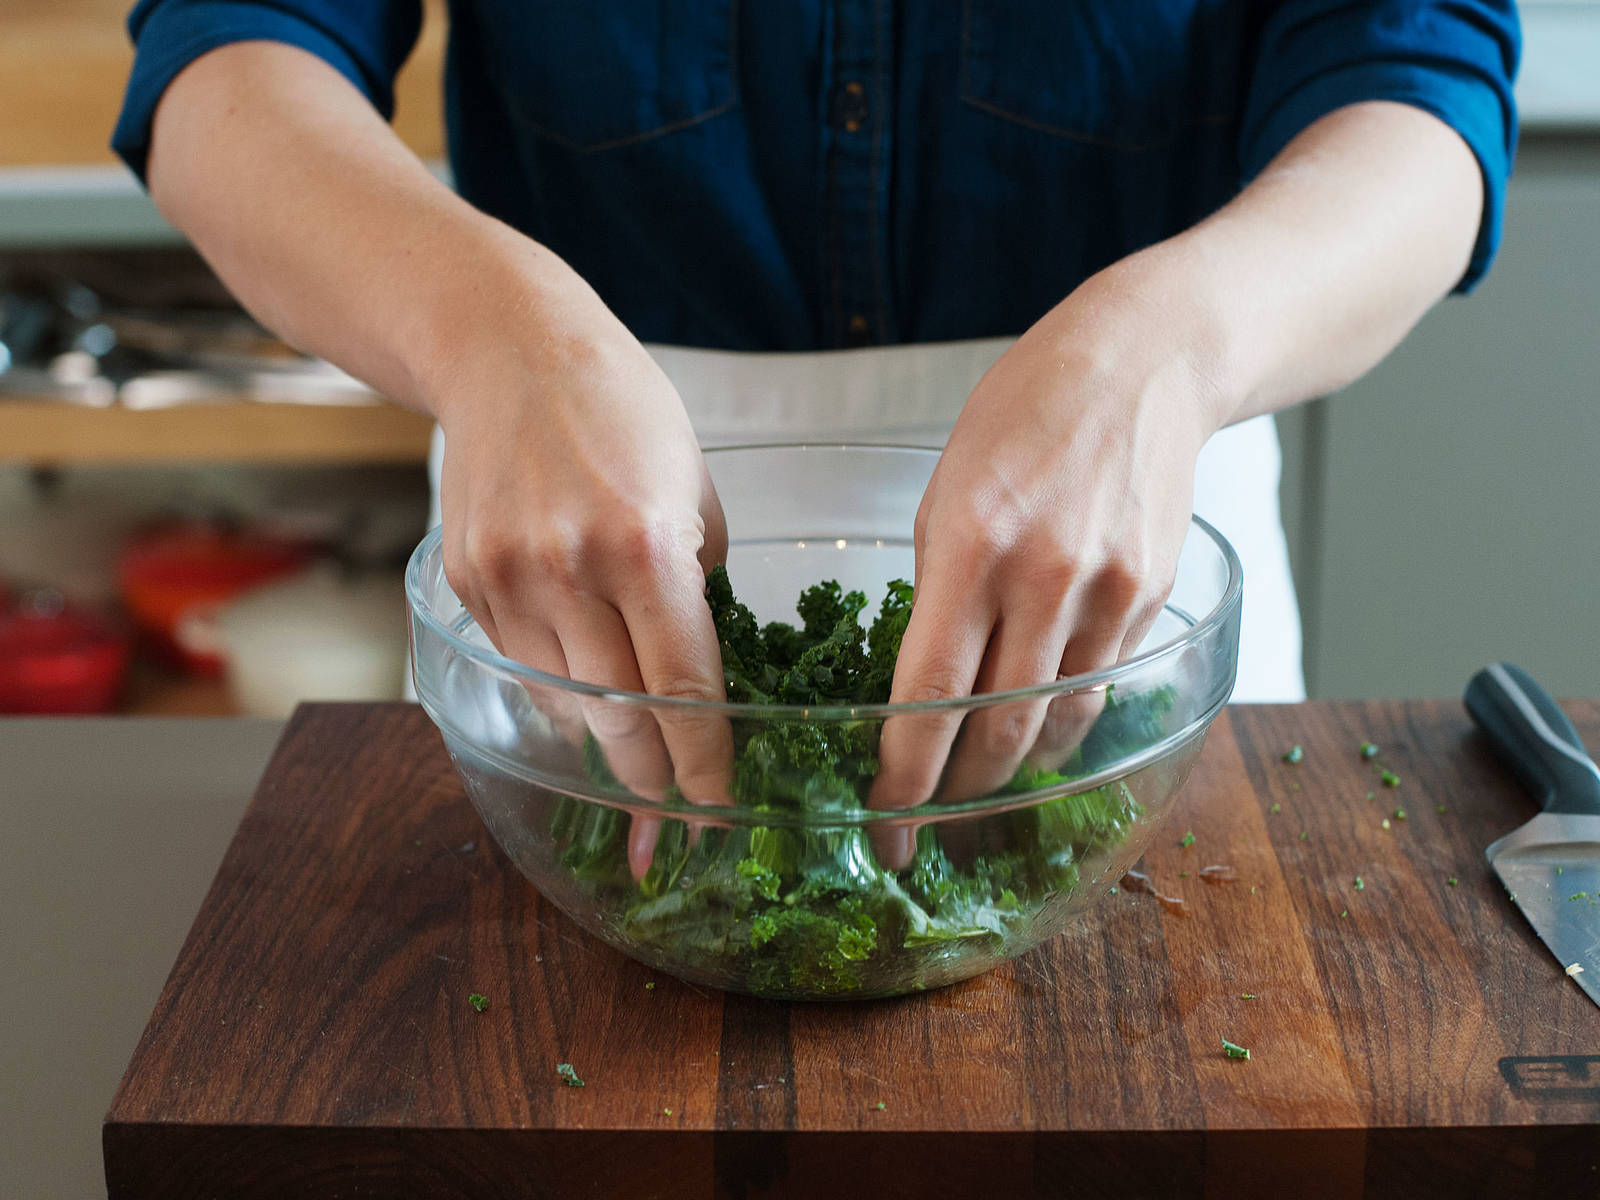 Remove stems from kale. Roughly chop or tear leaves with your hands. Transfer to a large mixing bowl along with some of the lemon juice and olive oil. Mix to coat and massage oil into kale to soften. Set aside.